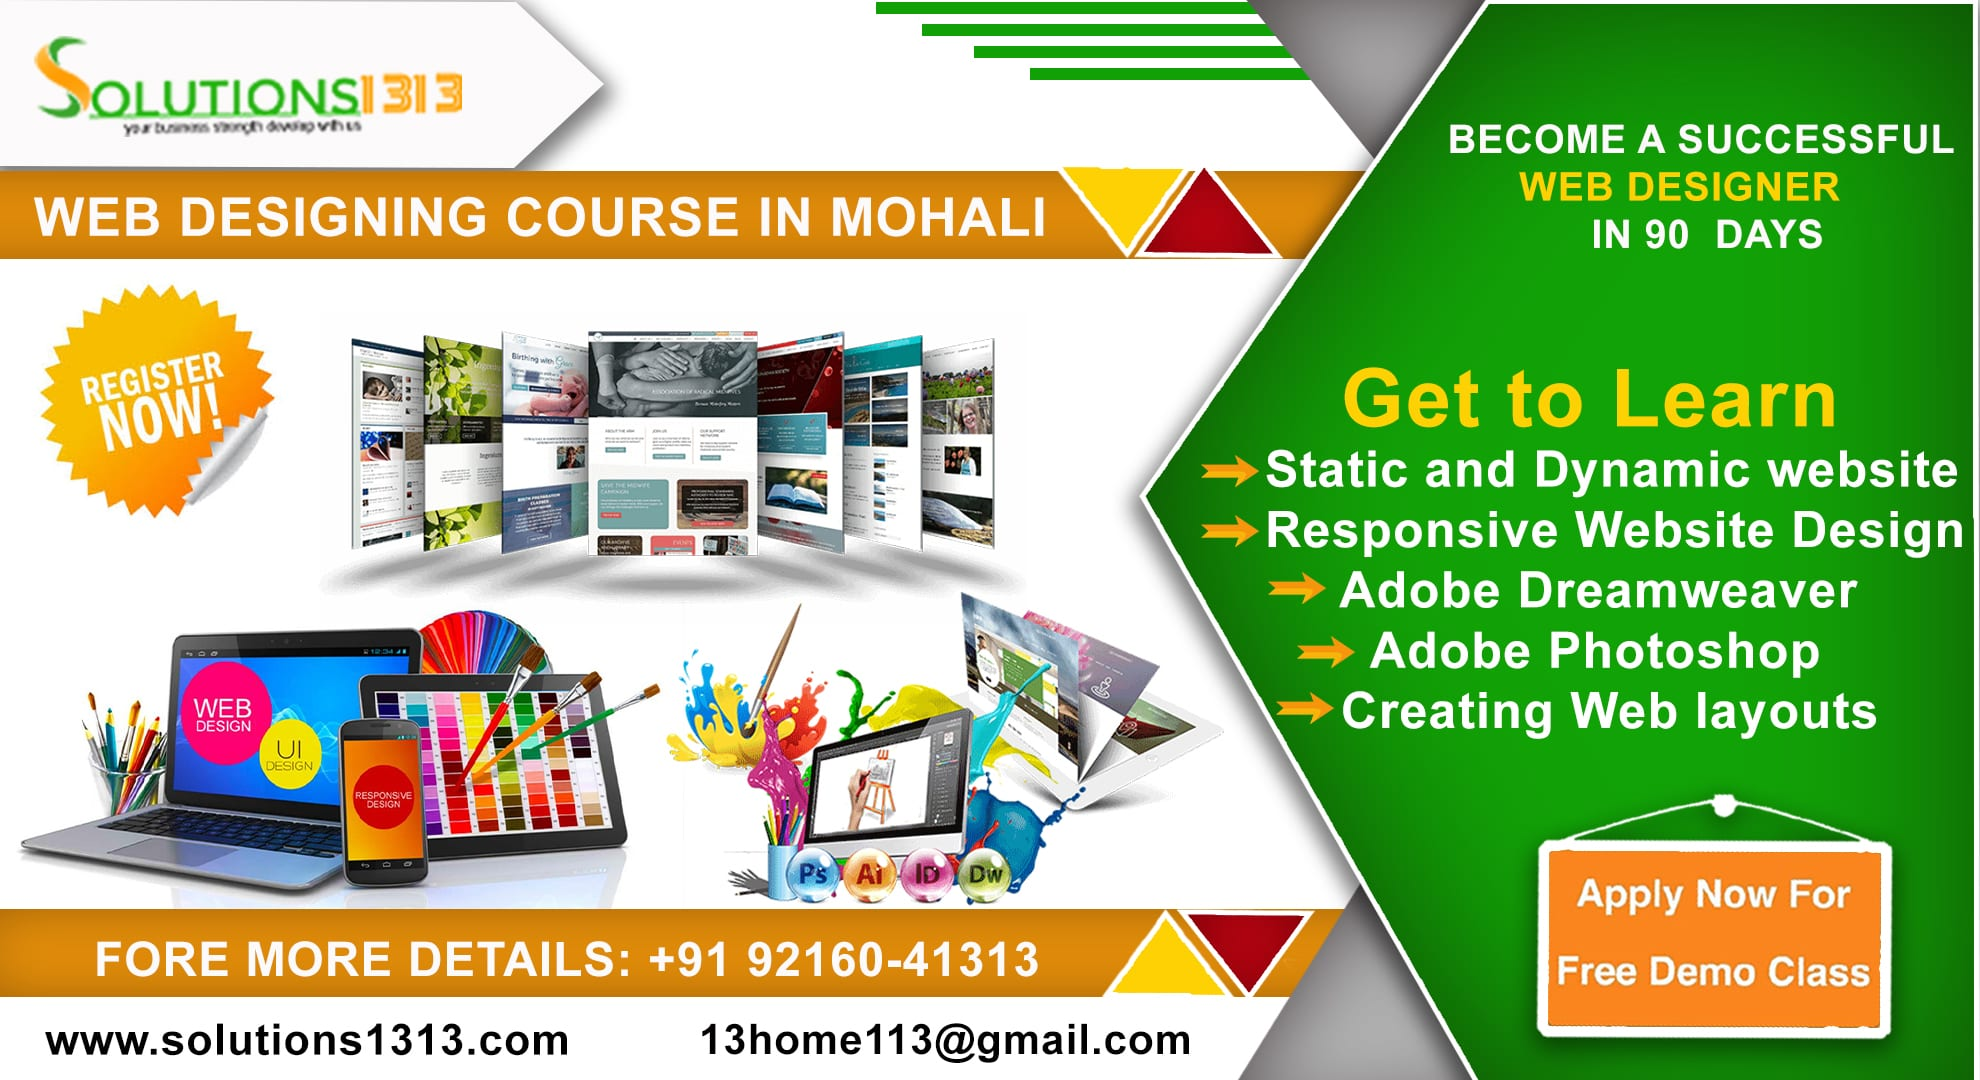 Web Designing Course In Mohali Dial 91 9216041313